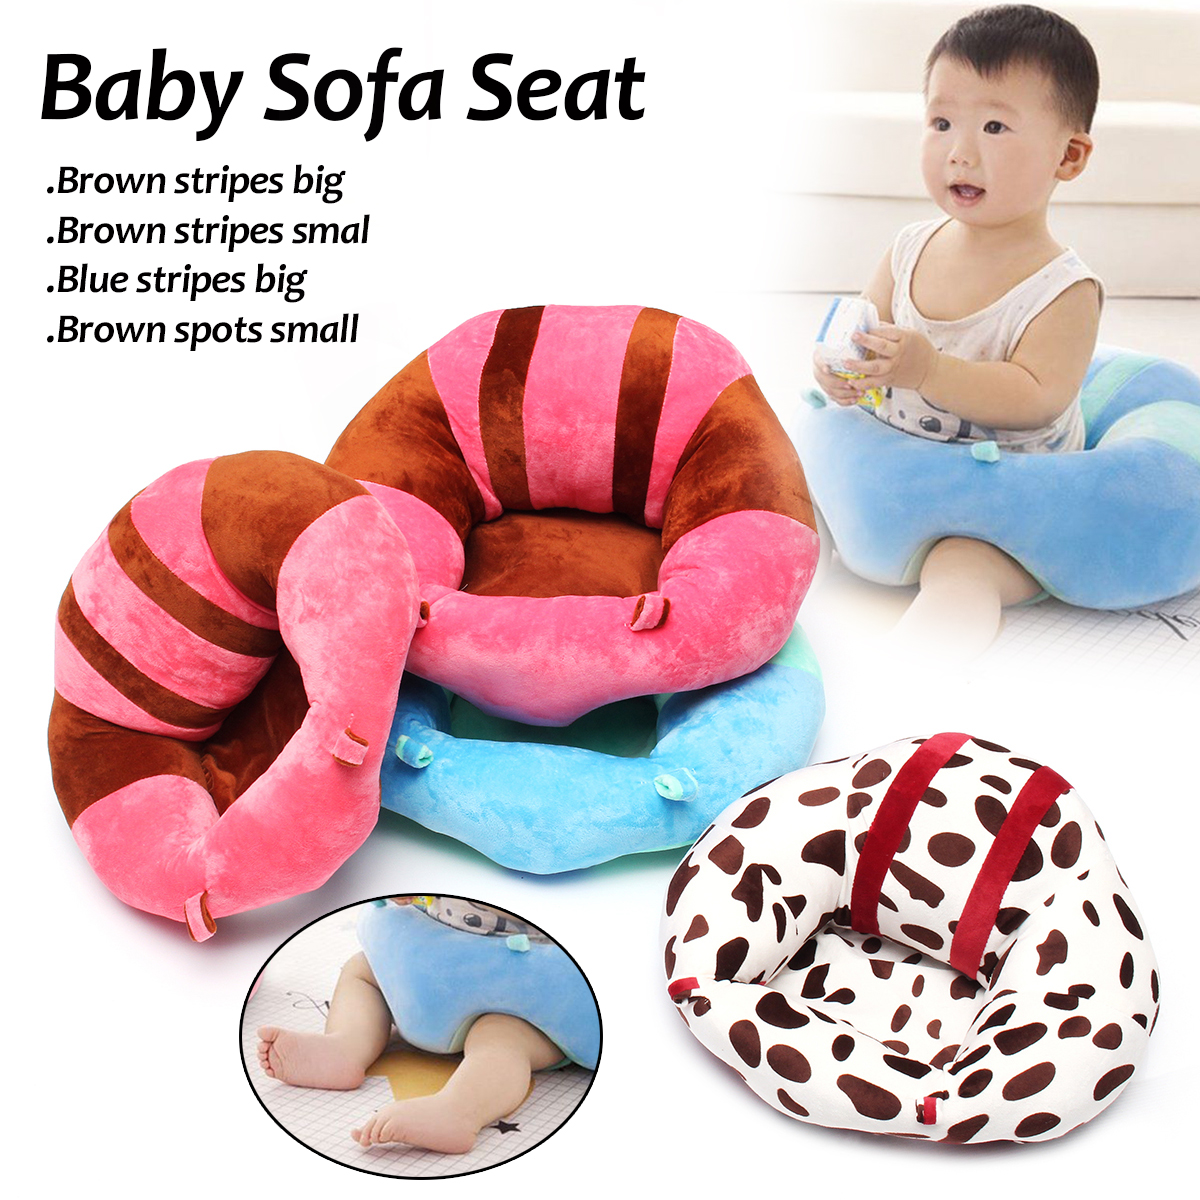 Baby Sofa Support Seat Nursing Pillow Safety Feeding Cushion Pad Chair Plush Toy